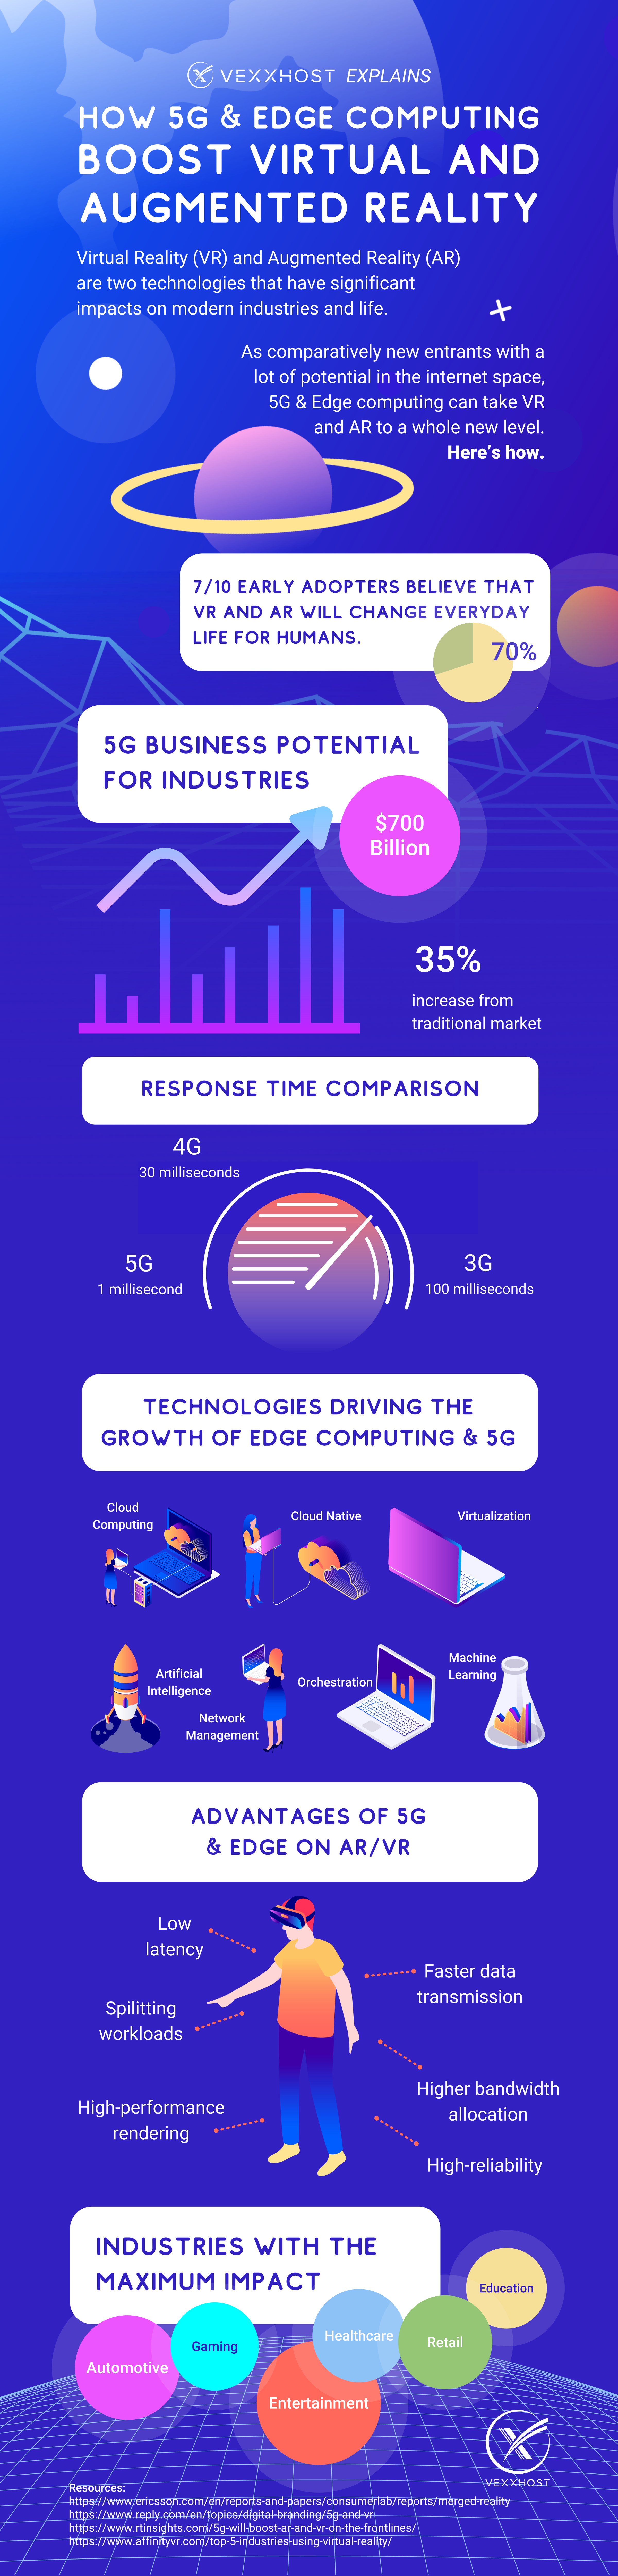 How-5G-Edge-Computing-Boost-Virtual-and-Augmented-Reality